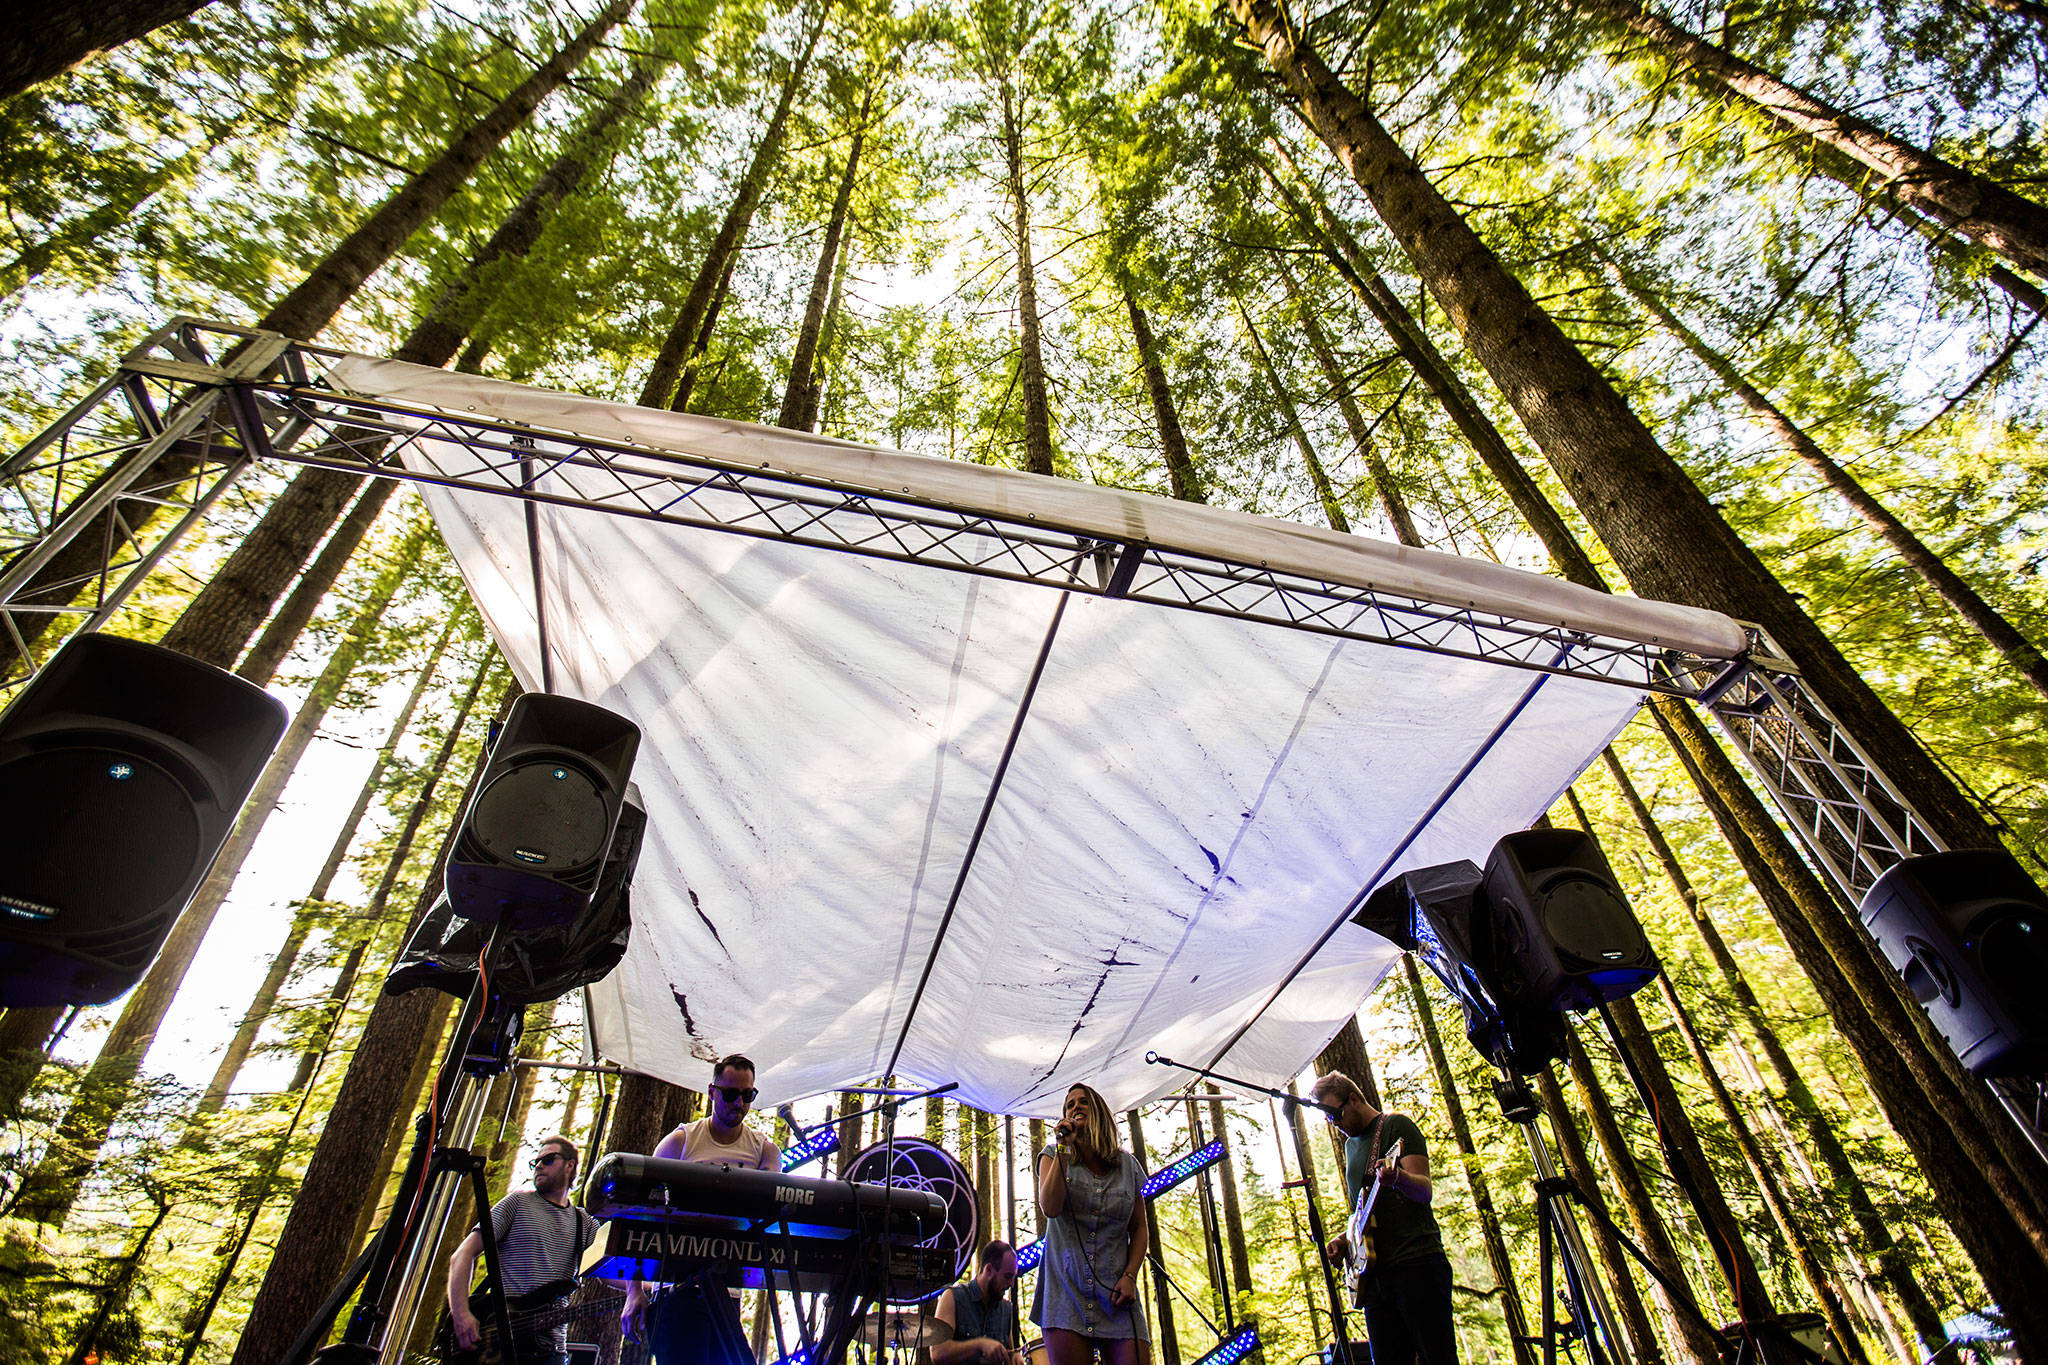 Everett band the Tellers perform at the Forest Stage during the third day of Summer Meltdown on Saturday, Aug. 3, 2019 in Darrington, Wash. (Olivia Vanni / The Herald)